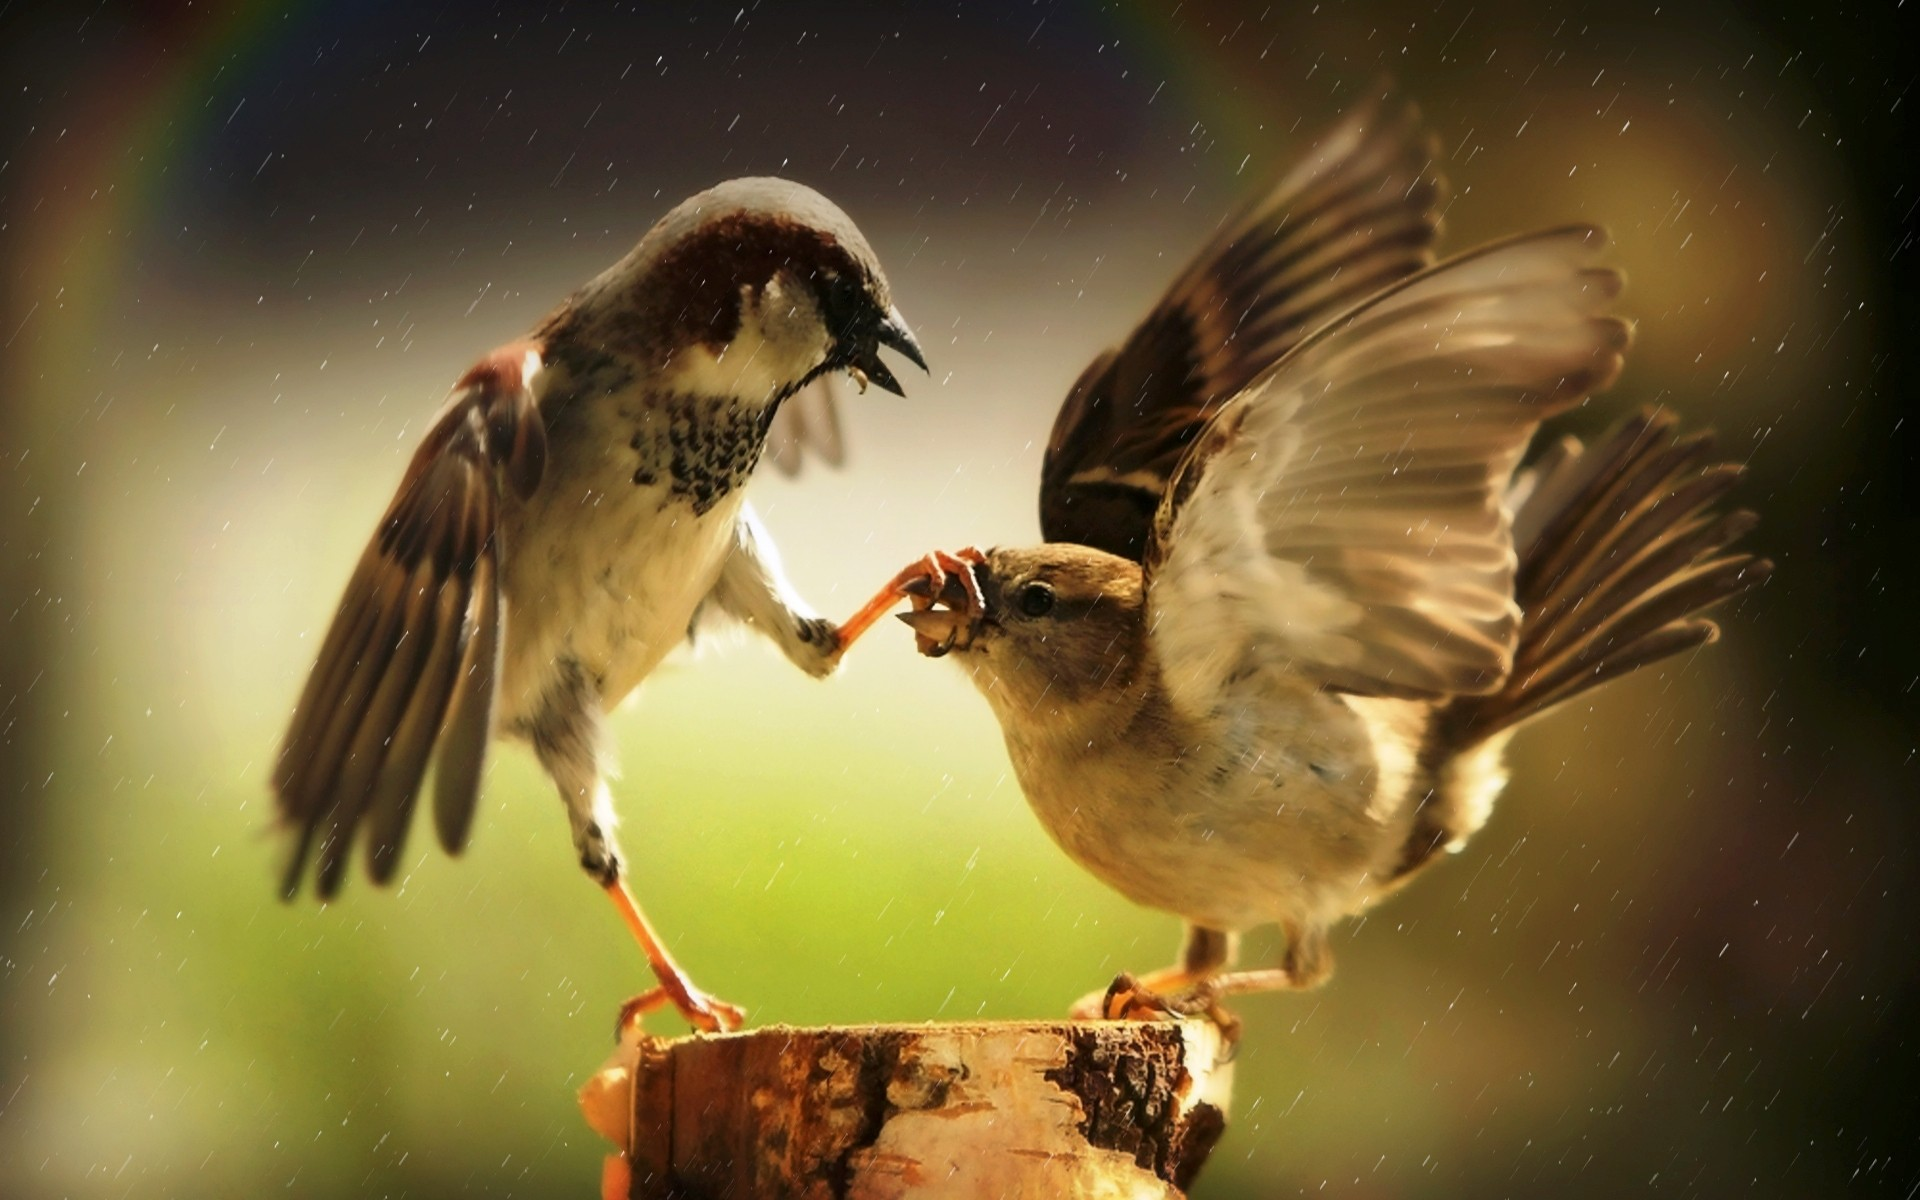 birds wallpapers domination